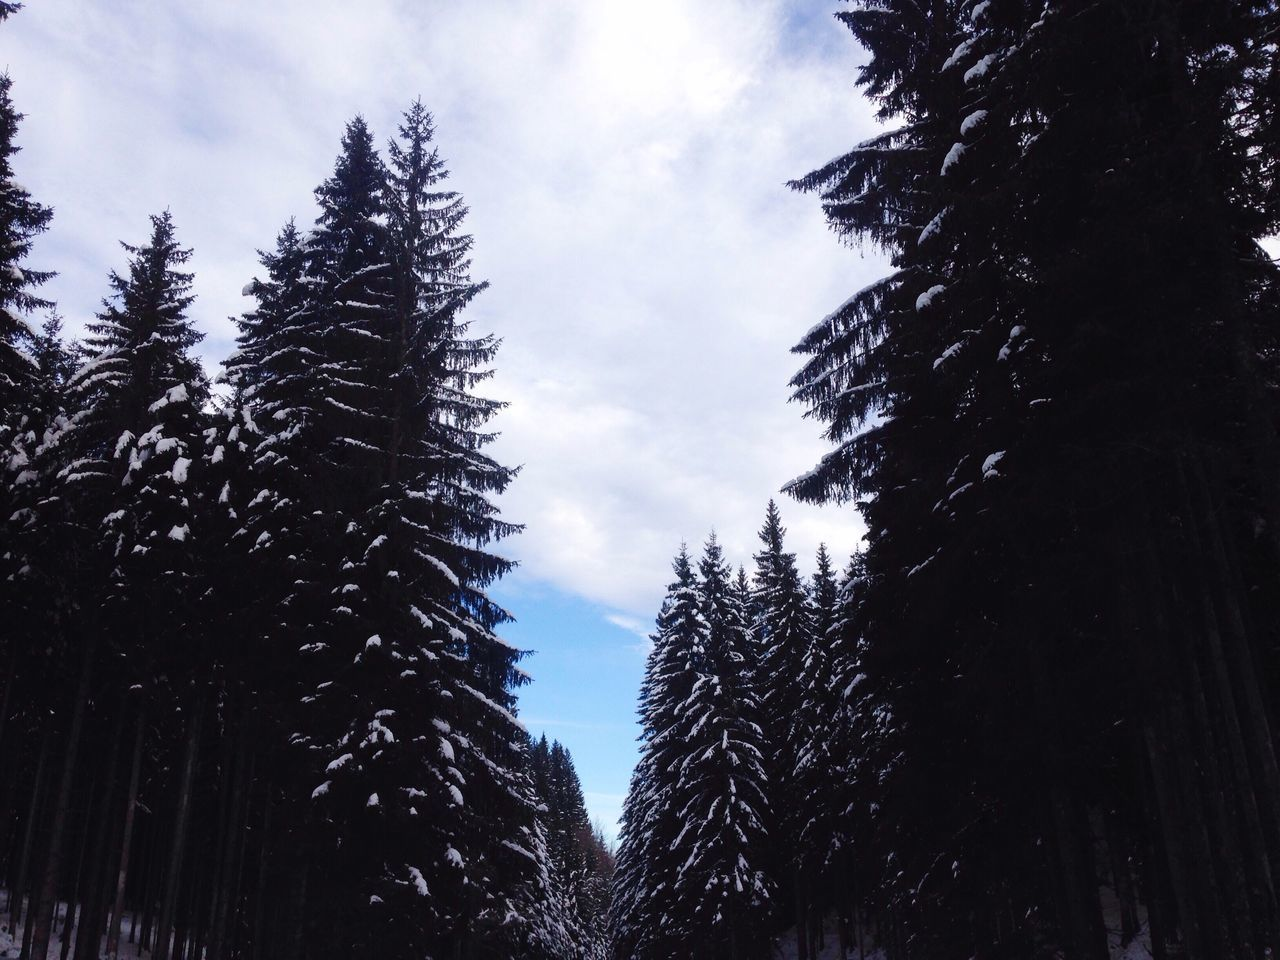 Tree Nature Sky Low Angle View Snow Winter Cold Temperature No People Growth Tranquility Beauty In Nature Day Outdoors Cloud - Sky Snowing Snow ❄ Snow Trees Cold Winter Christmas Tree Love Pretty